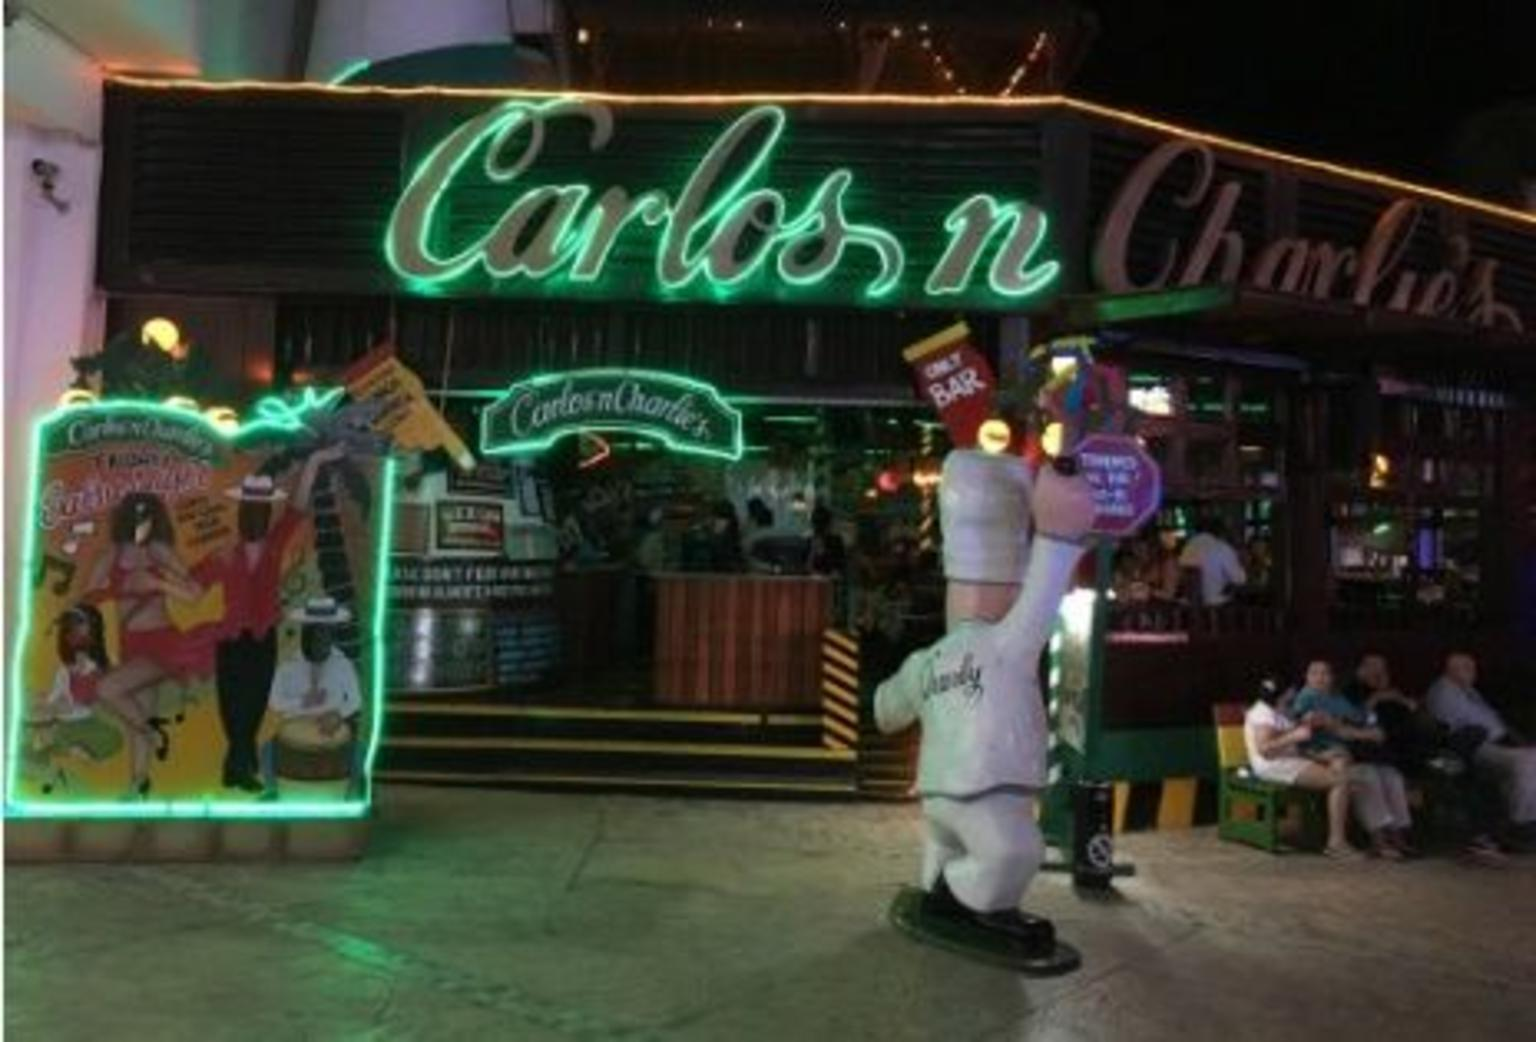 Cancun Nightlife Tour: Open Bar at Coco Bongo and Dinner at Carlos 'n Charlie's